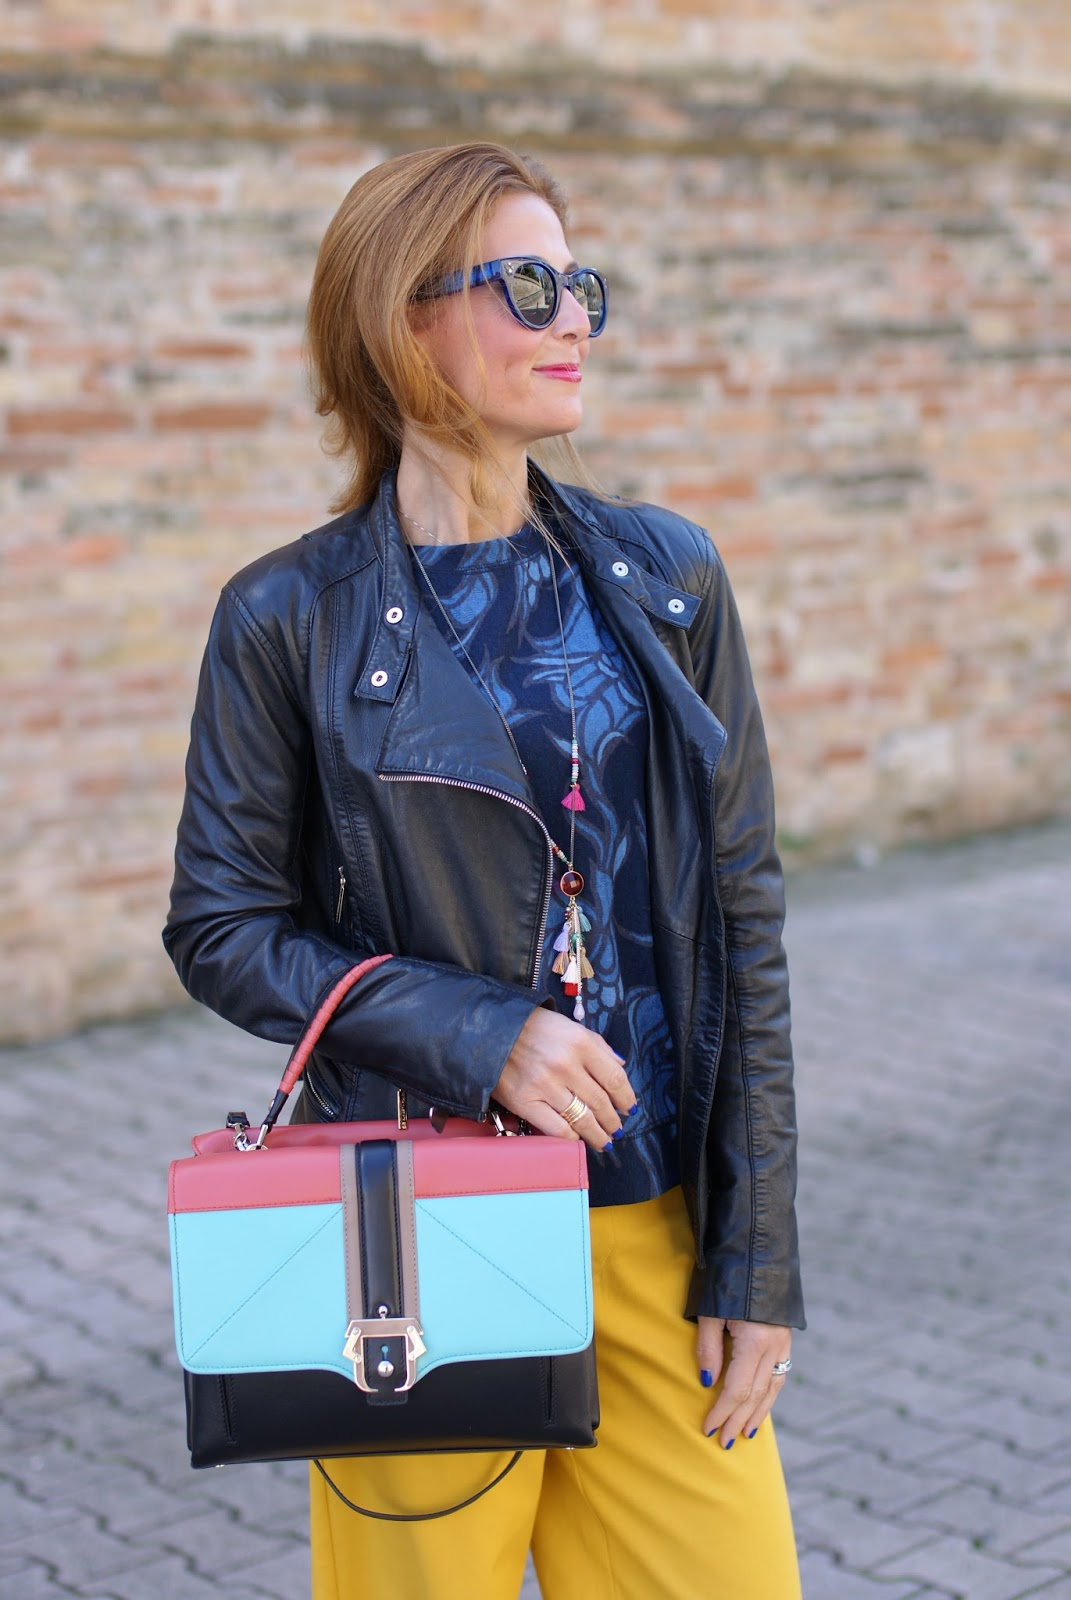 Paula Cademartori Faye handbag, leather jacket from Elisabetta Franchi and Hype Glass on Fashion and Cookies fashion blog